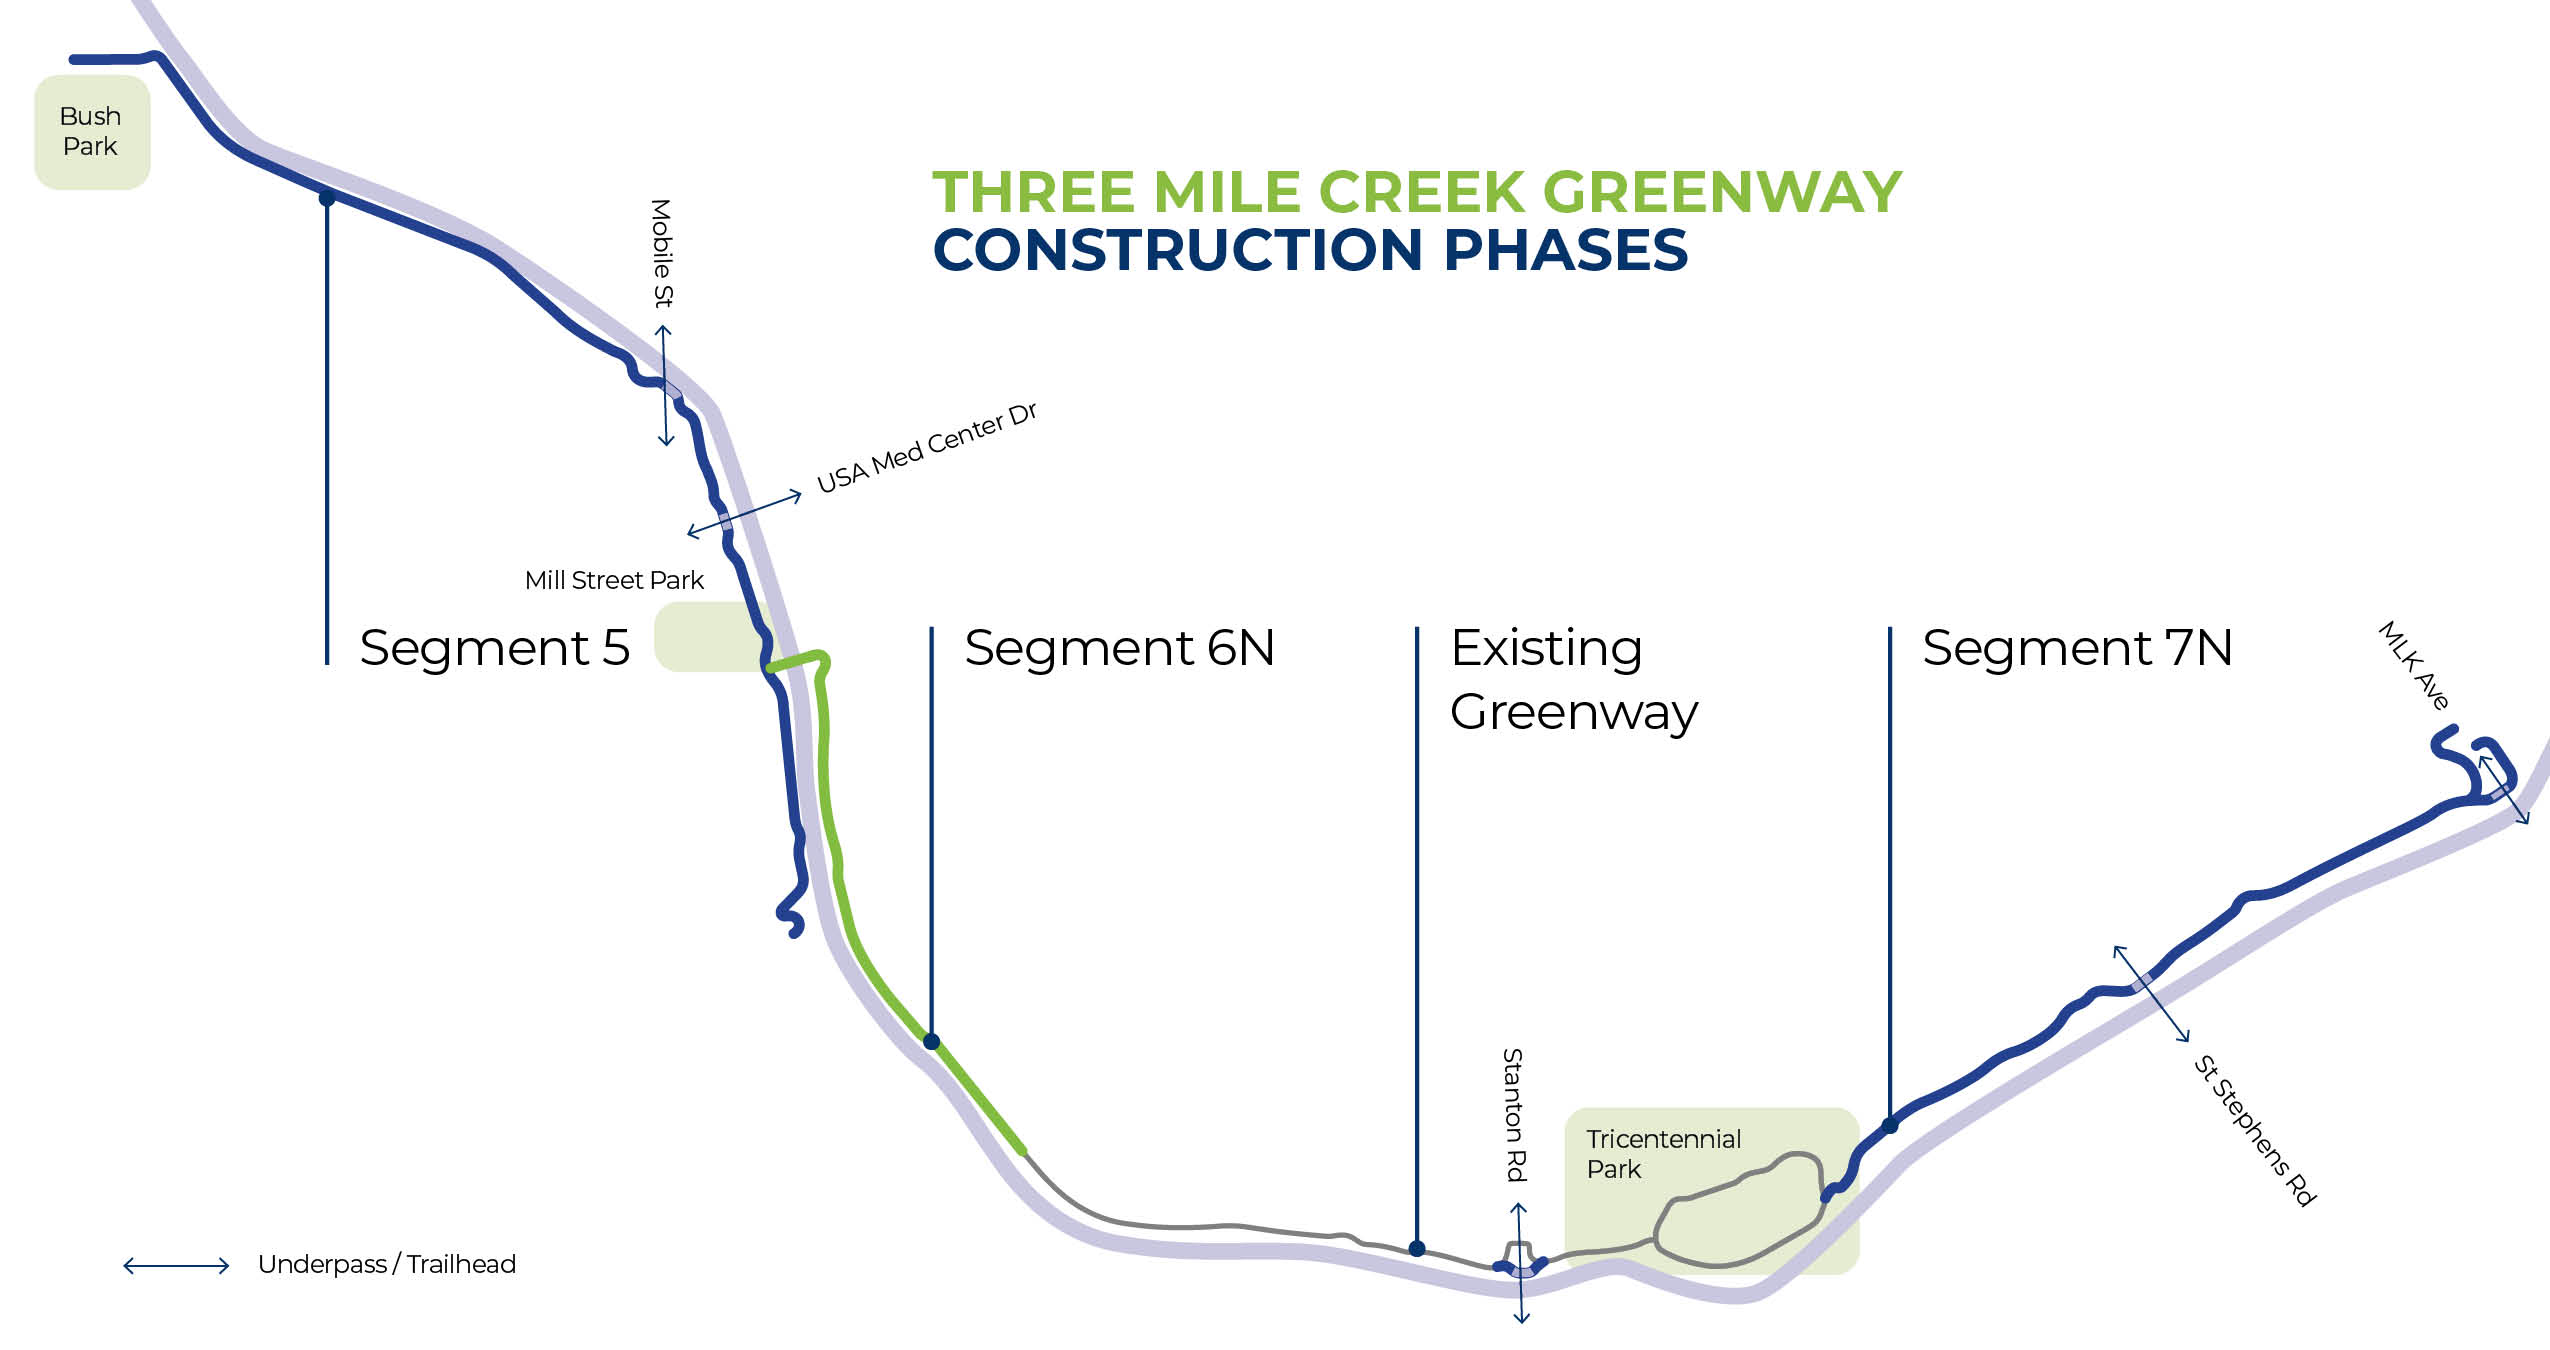 Three Mile Creek Construction Phases Diagram